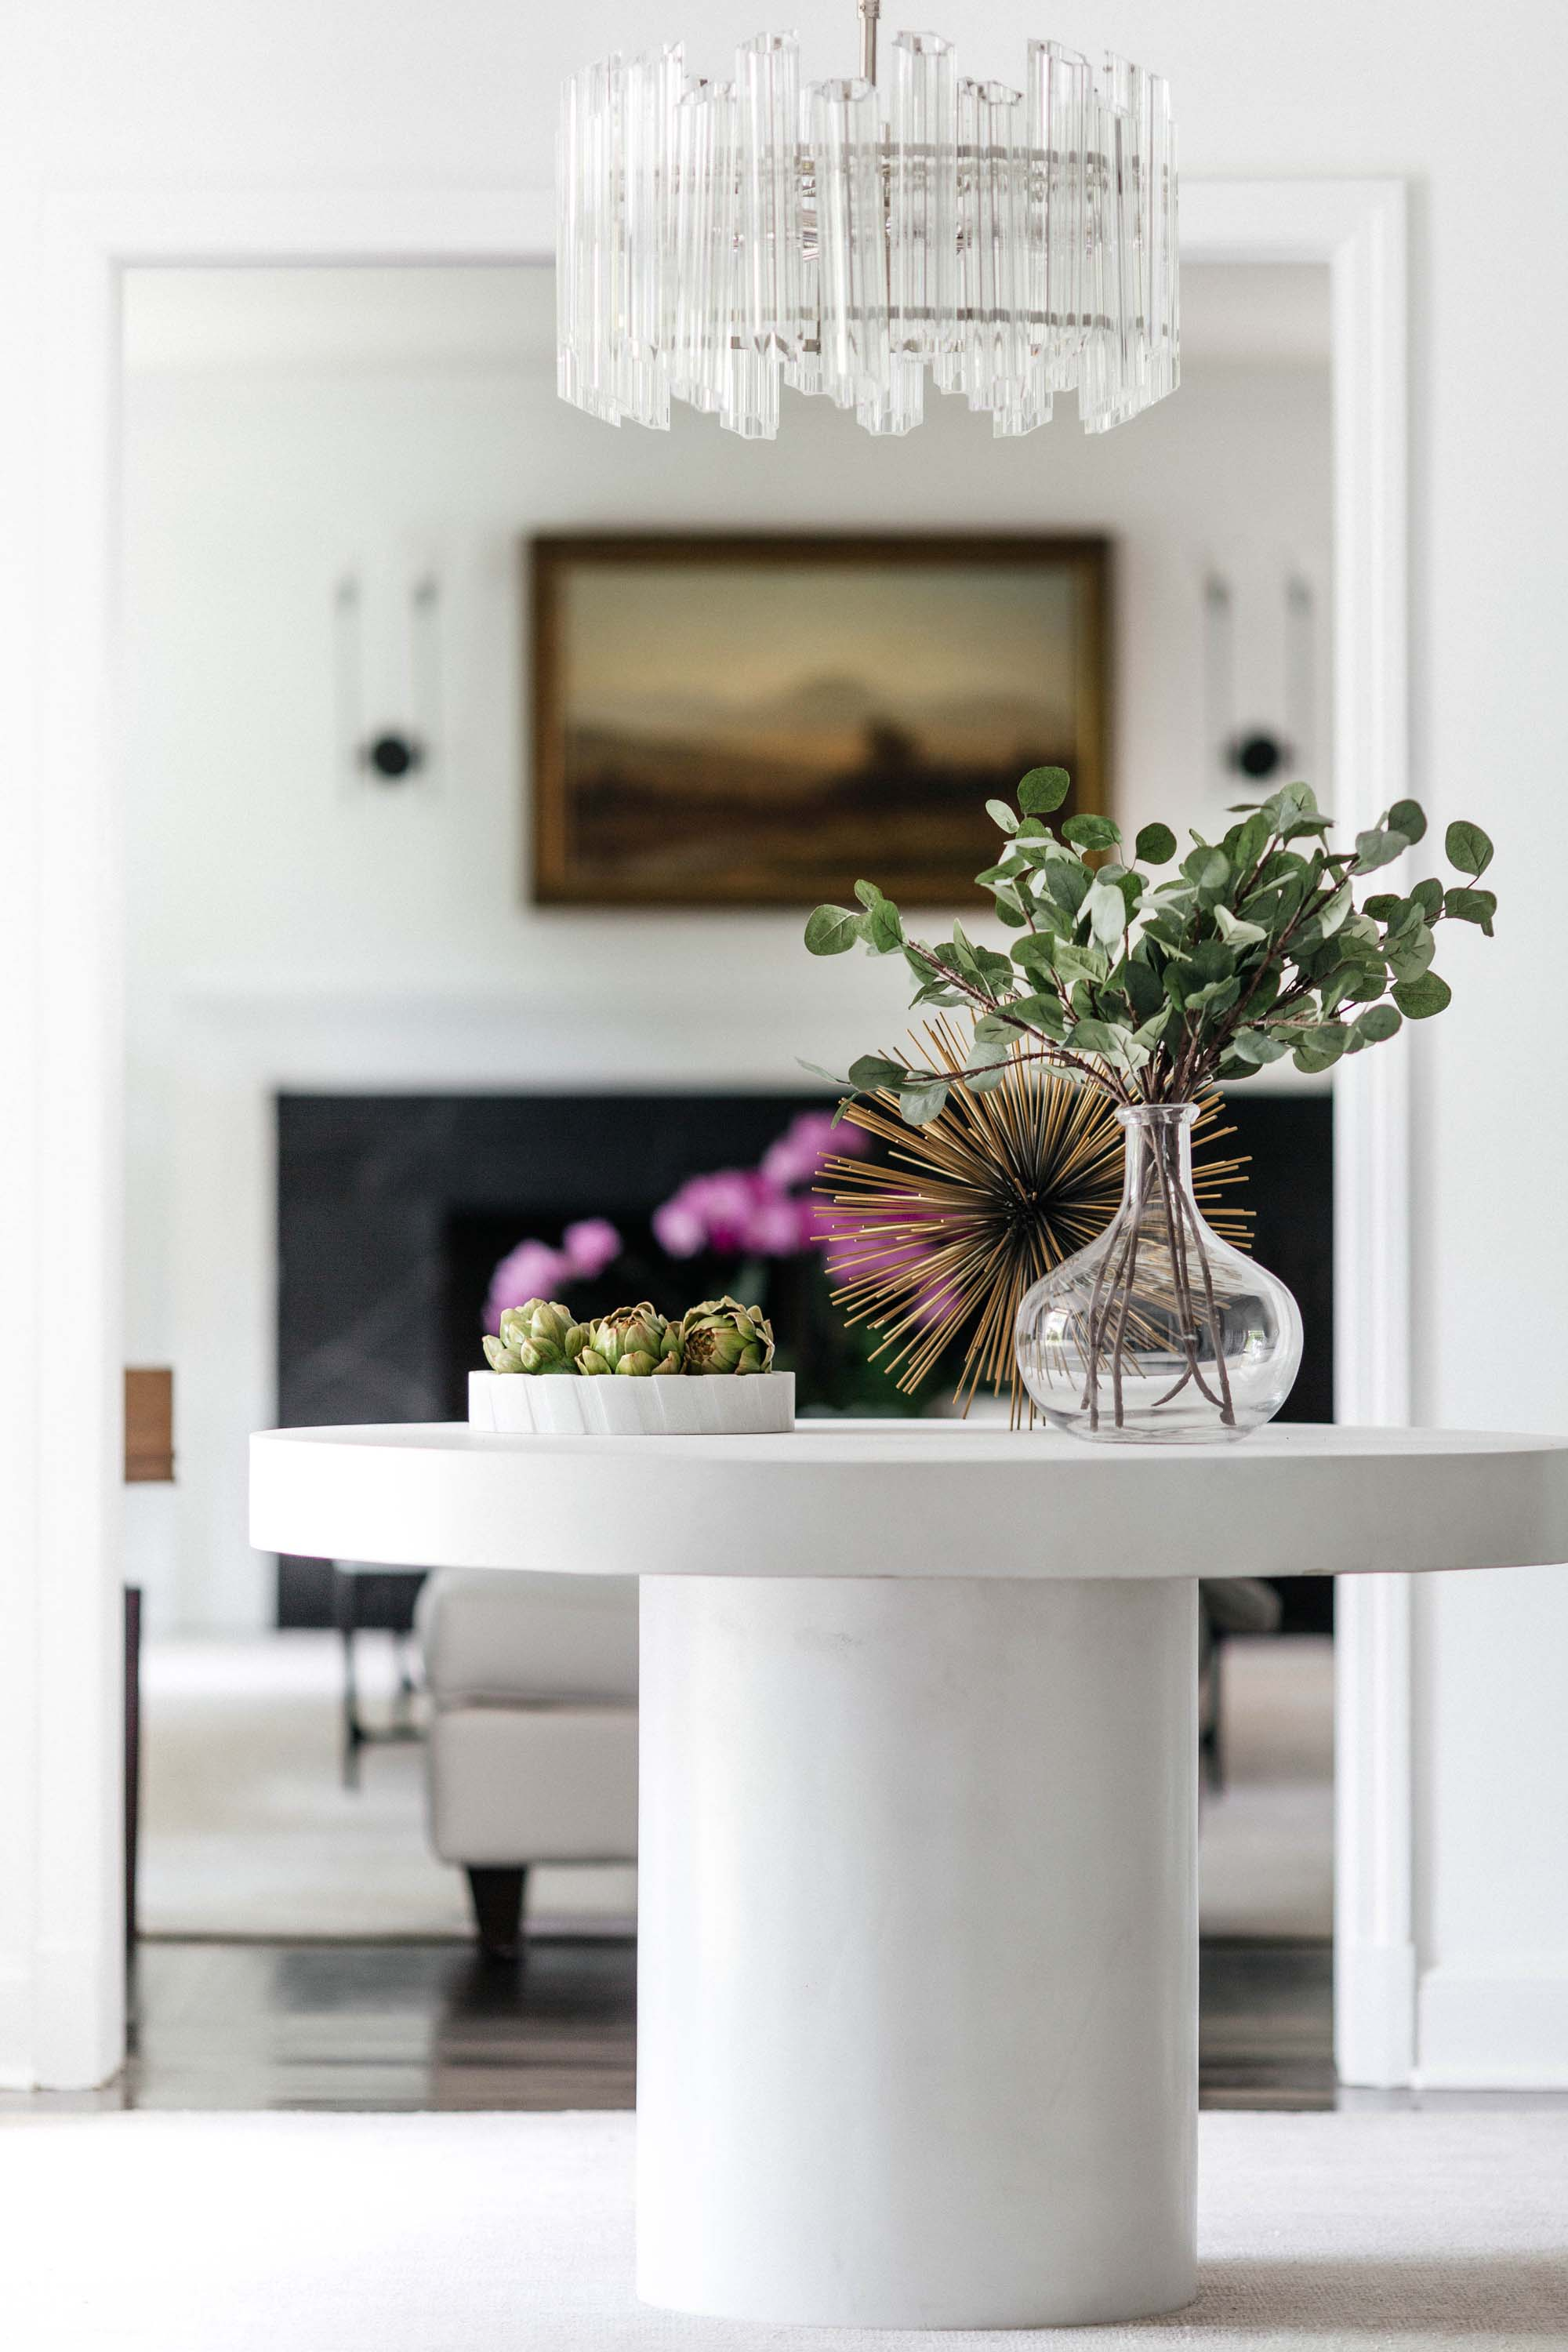 House interior with white round table and plants on top